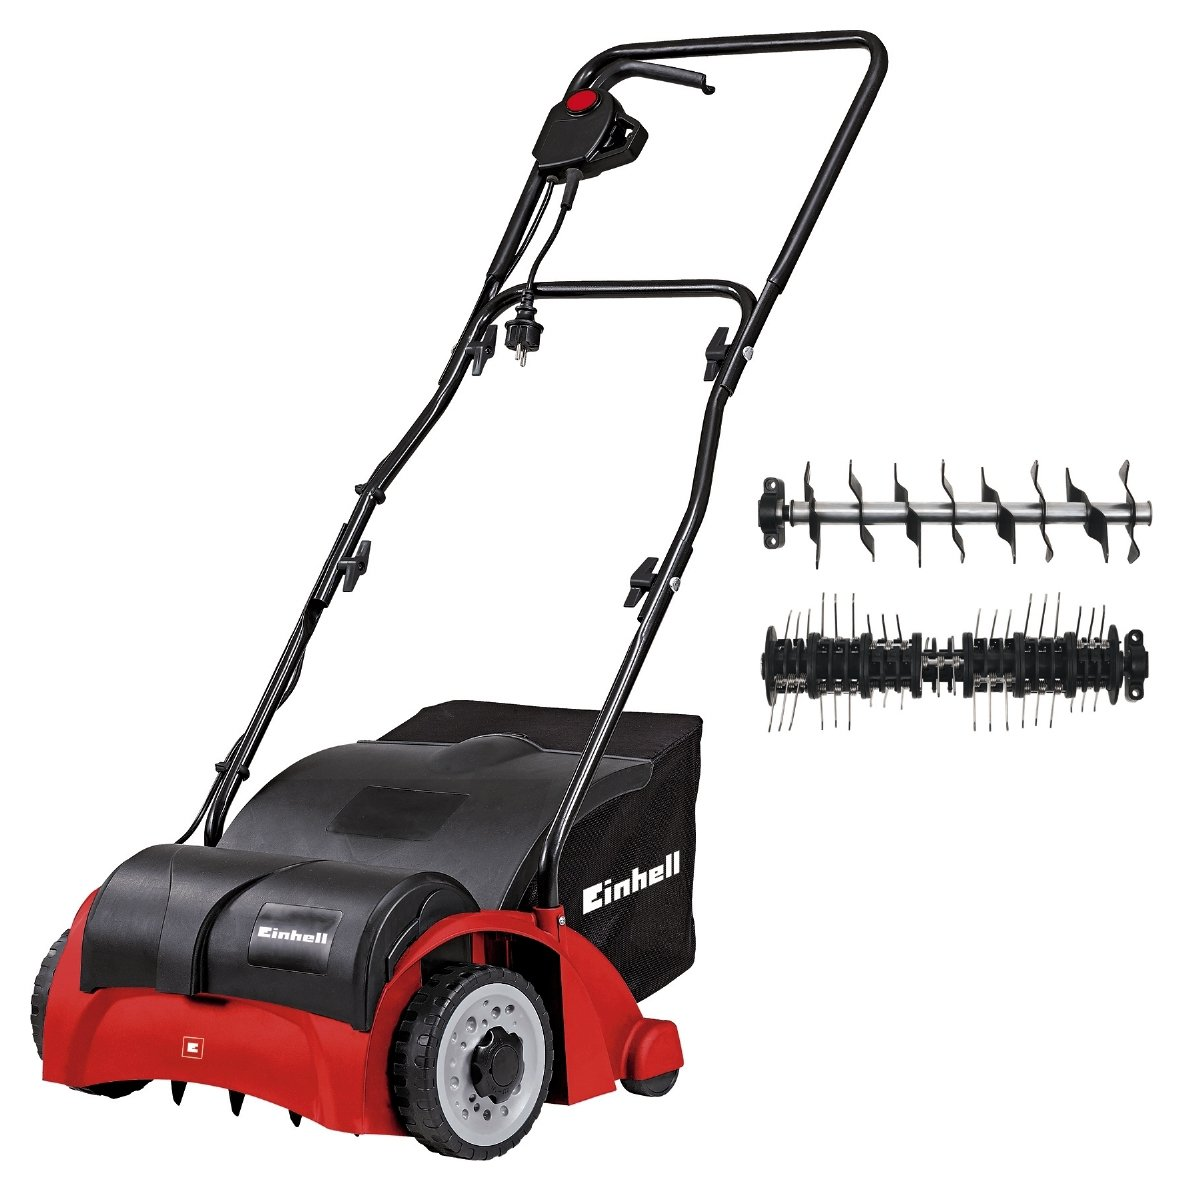 Image of Einhell 1200W 310mm Electric Scarifier & Aerator.